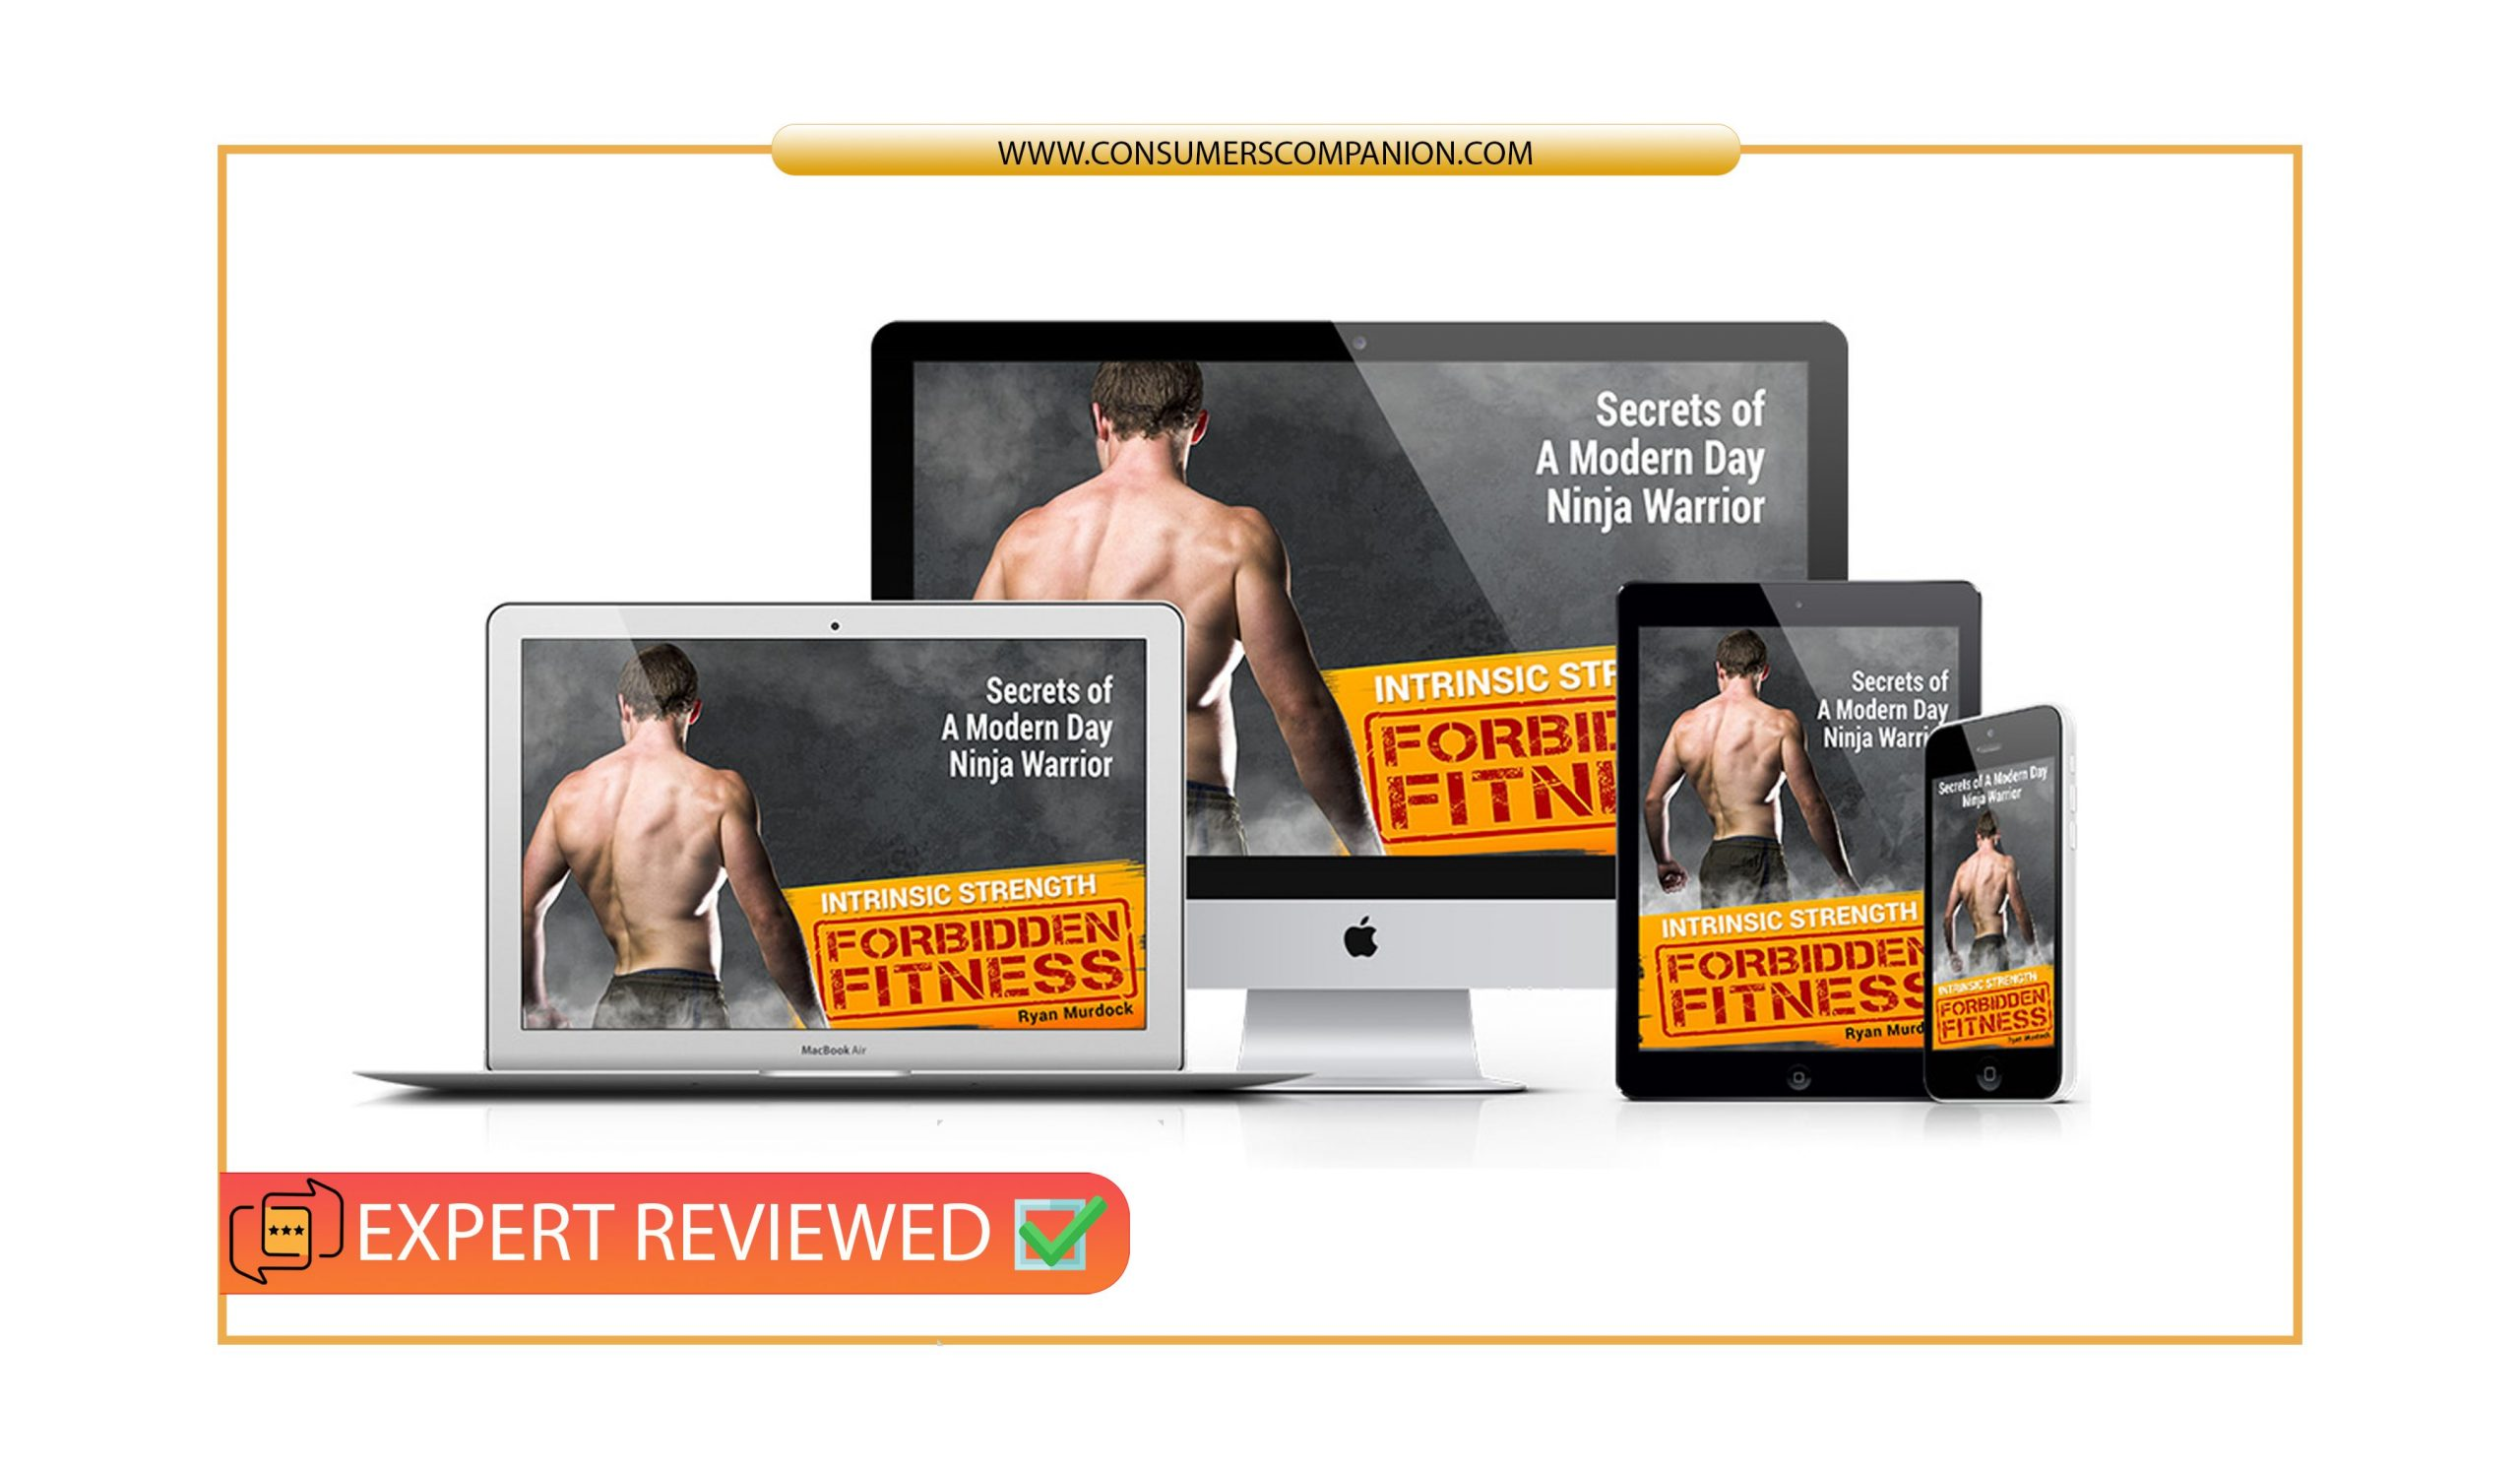 Forbidden Fitness Secrets Review